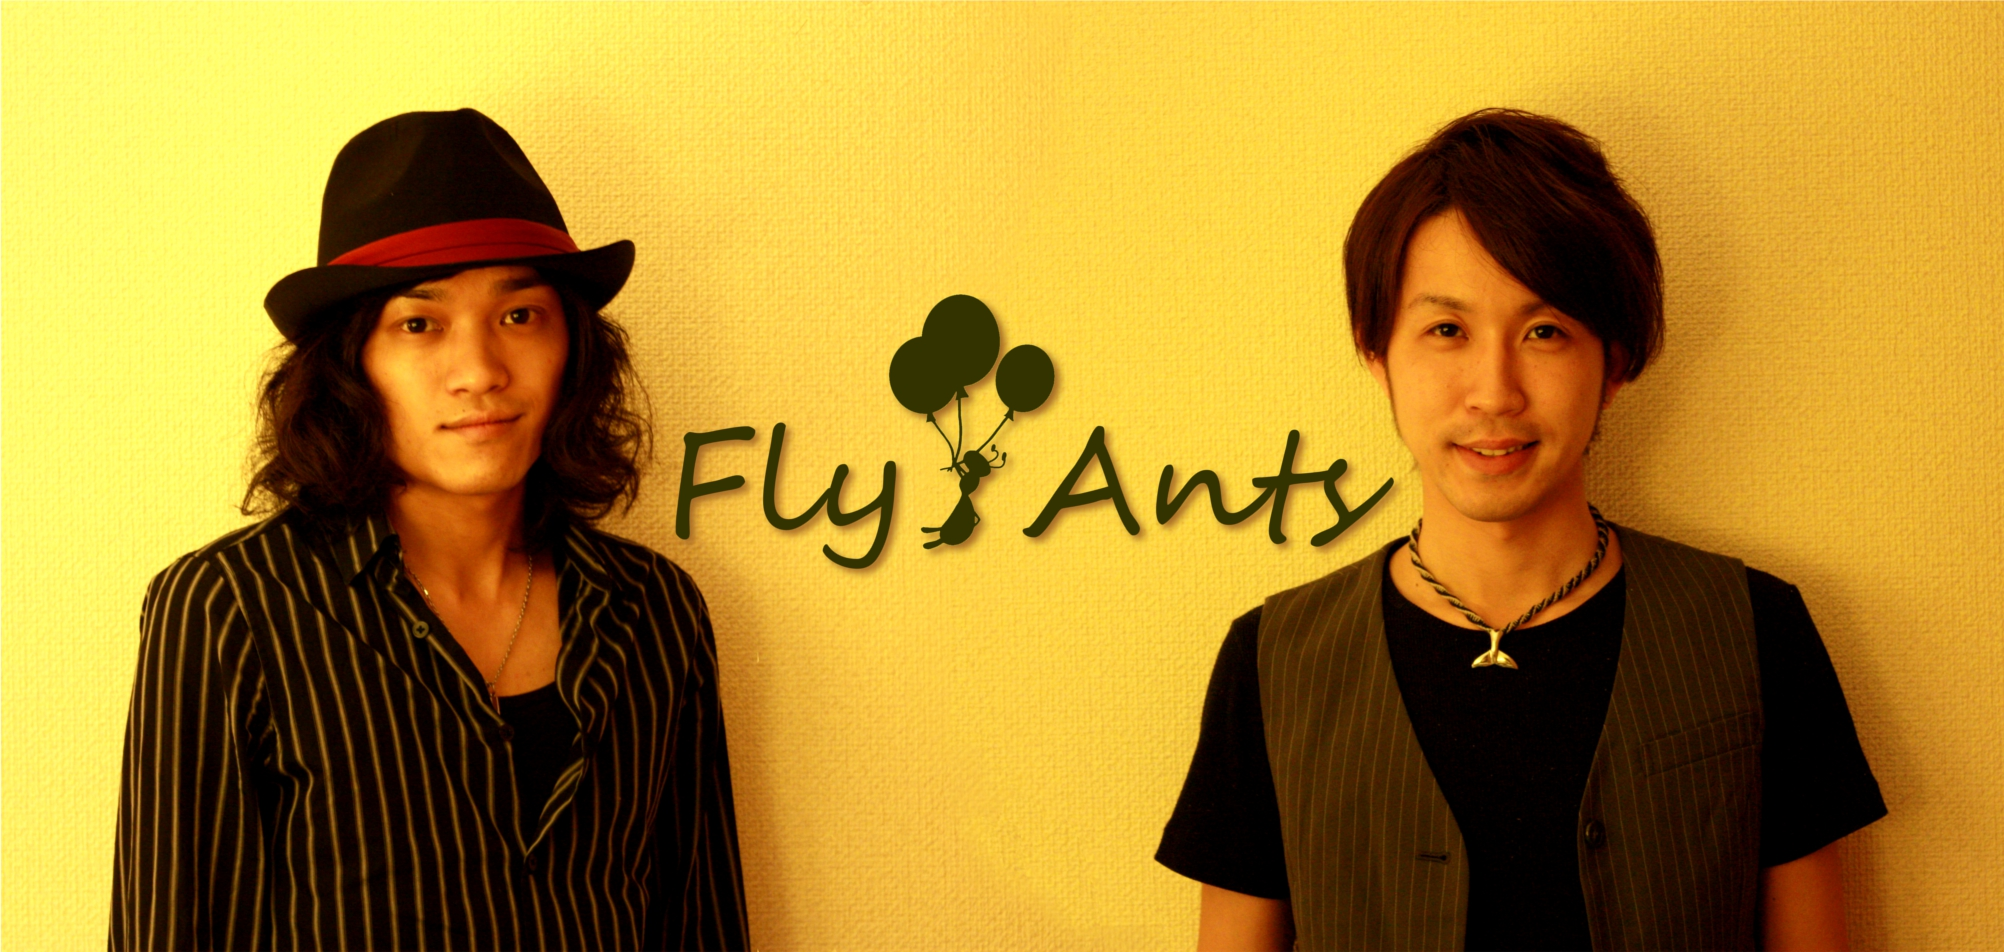 Fly Ants